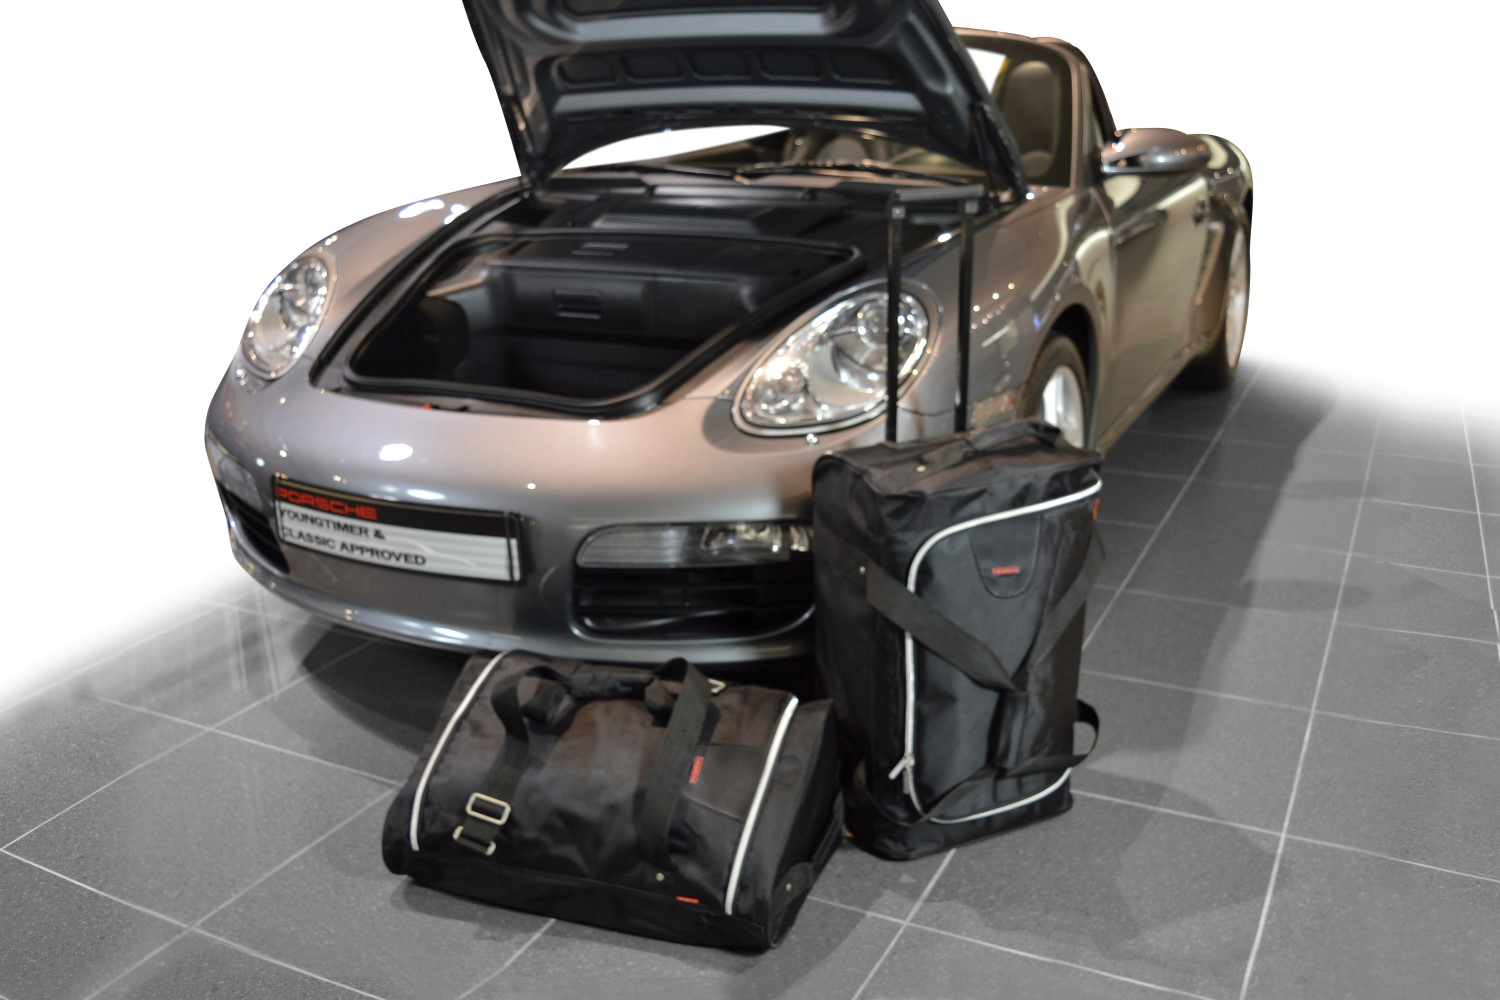 cayman boxster porsche cayman boxster 987 2004 2012 car bags travel bags 2wd 4wd. Black Bedroom Furniture Sets. Home Design Ideas